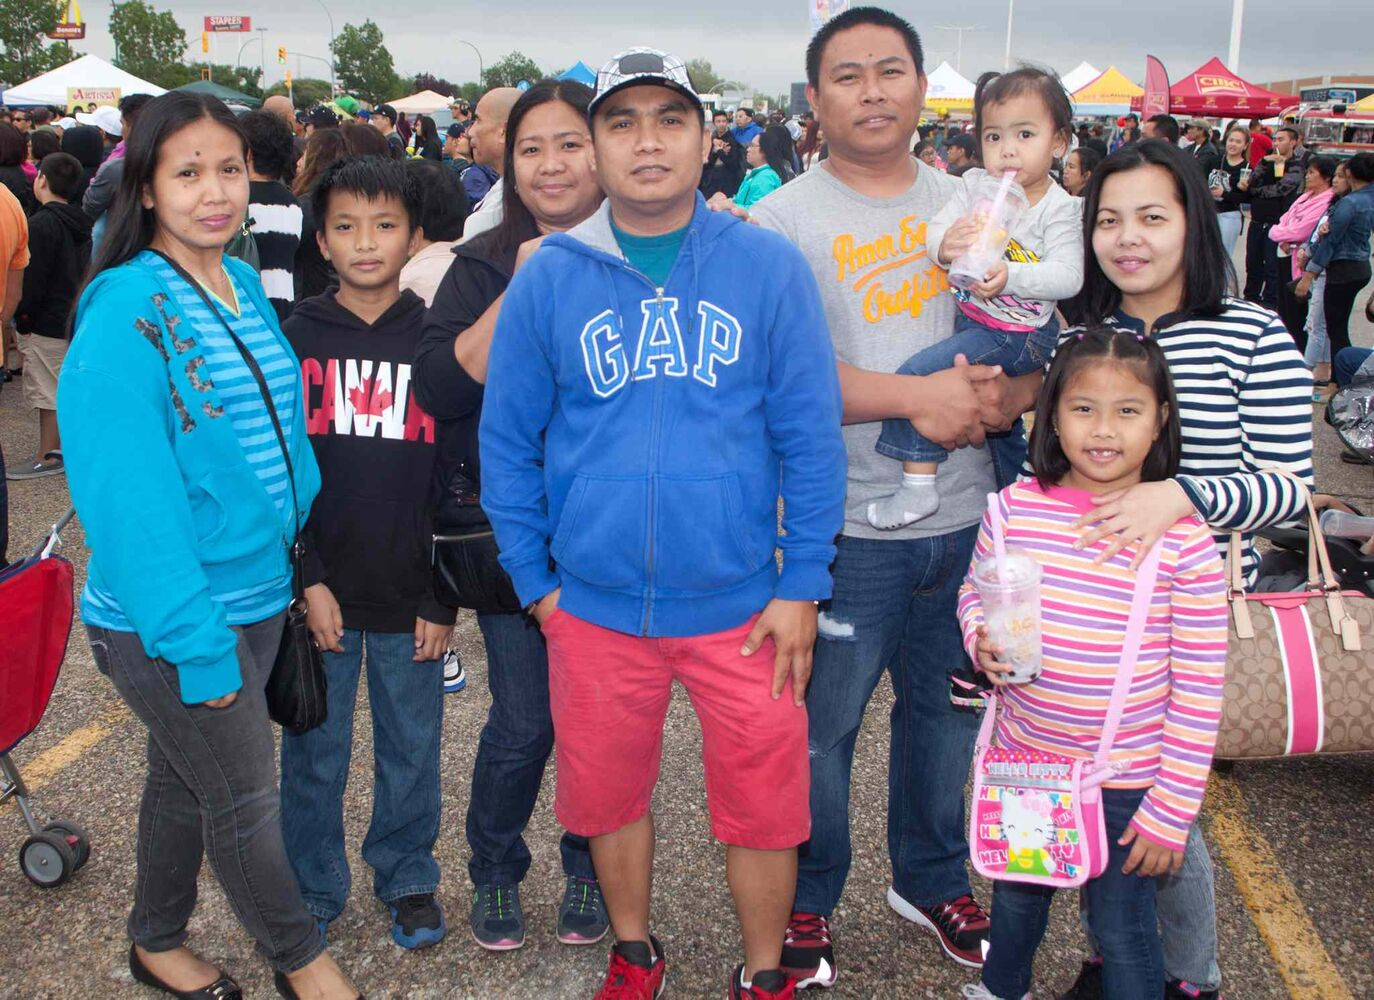 The Manitoba Filipino Street Festival didn't let the rain dampen its annual parade and party at Garden City Shopping Centre on Aug. 22, 2015. Pictured, from left, are Cherilyn Bautista, Aldiun Bautista, Marijane Banta, Roneil Banta, Melvin Magnayi, Ednalene Magnayi, Audrey Magnayi and Ashley Magnayi. (JOHN JOHNSTON FOR THE WINNIPEG FREE PRESS)